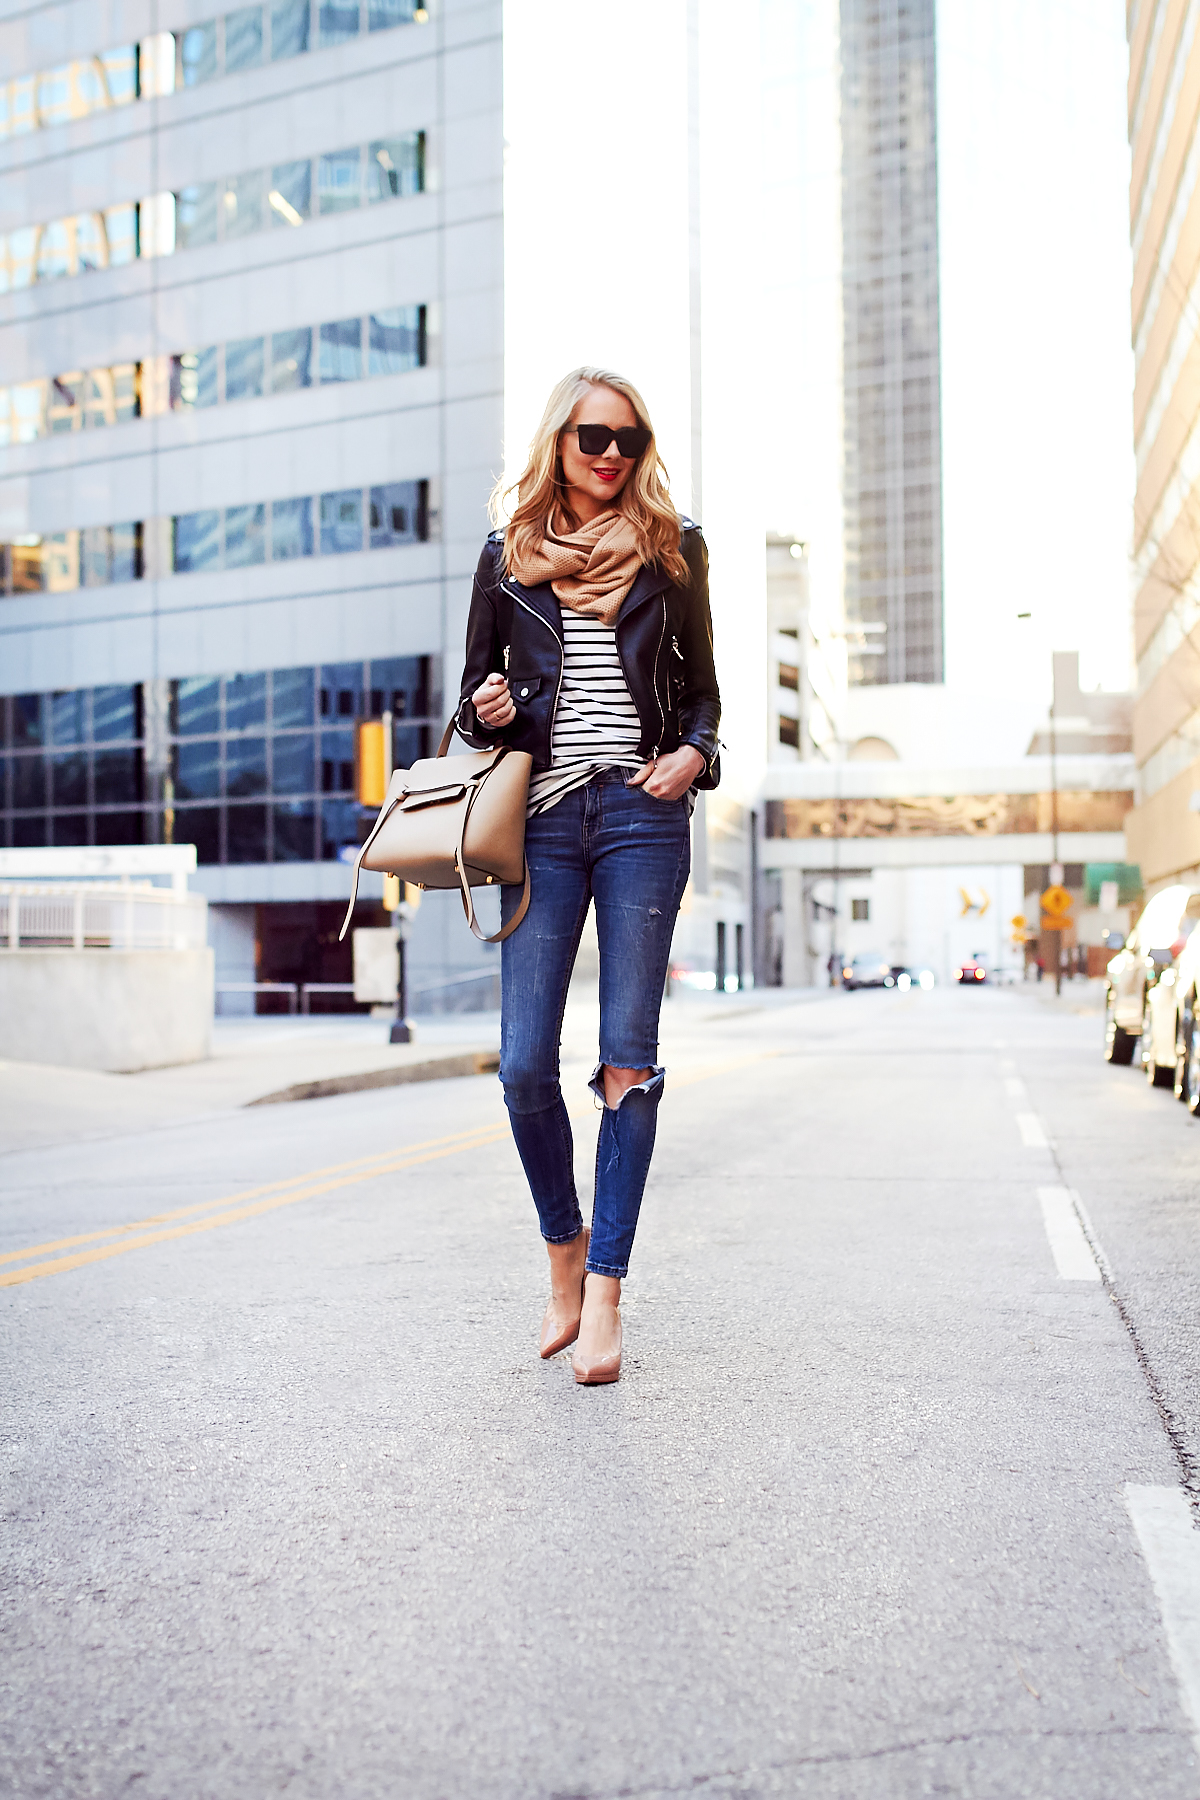 Fall Outfit, Casual Layers, Faux Leather Black Jacket, Black & White Stripe Tee, Ripped Denim Skinny Jeans, Celine Tie Belt Bag, Christian Louboutin Nude Pumps